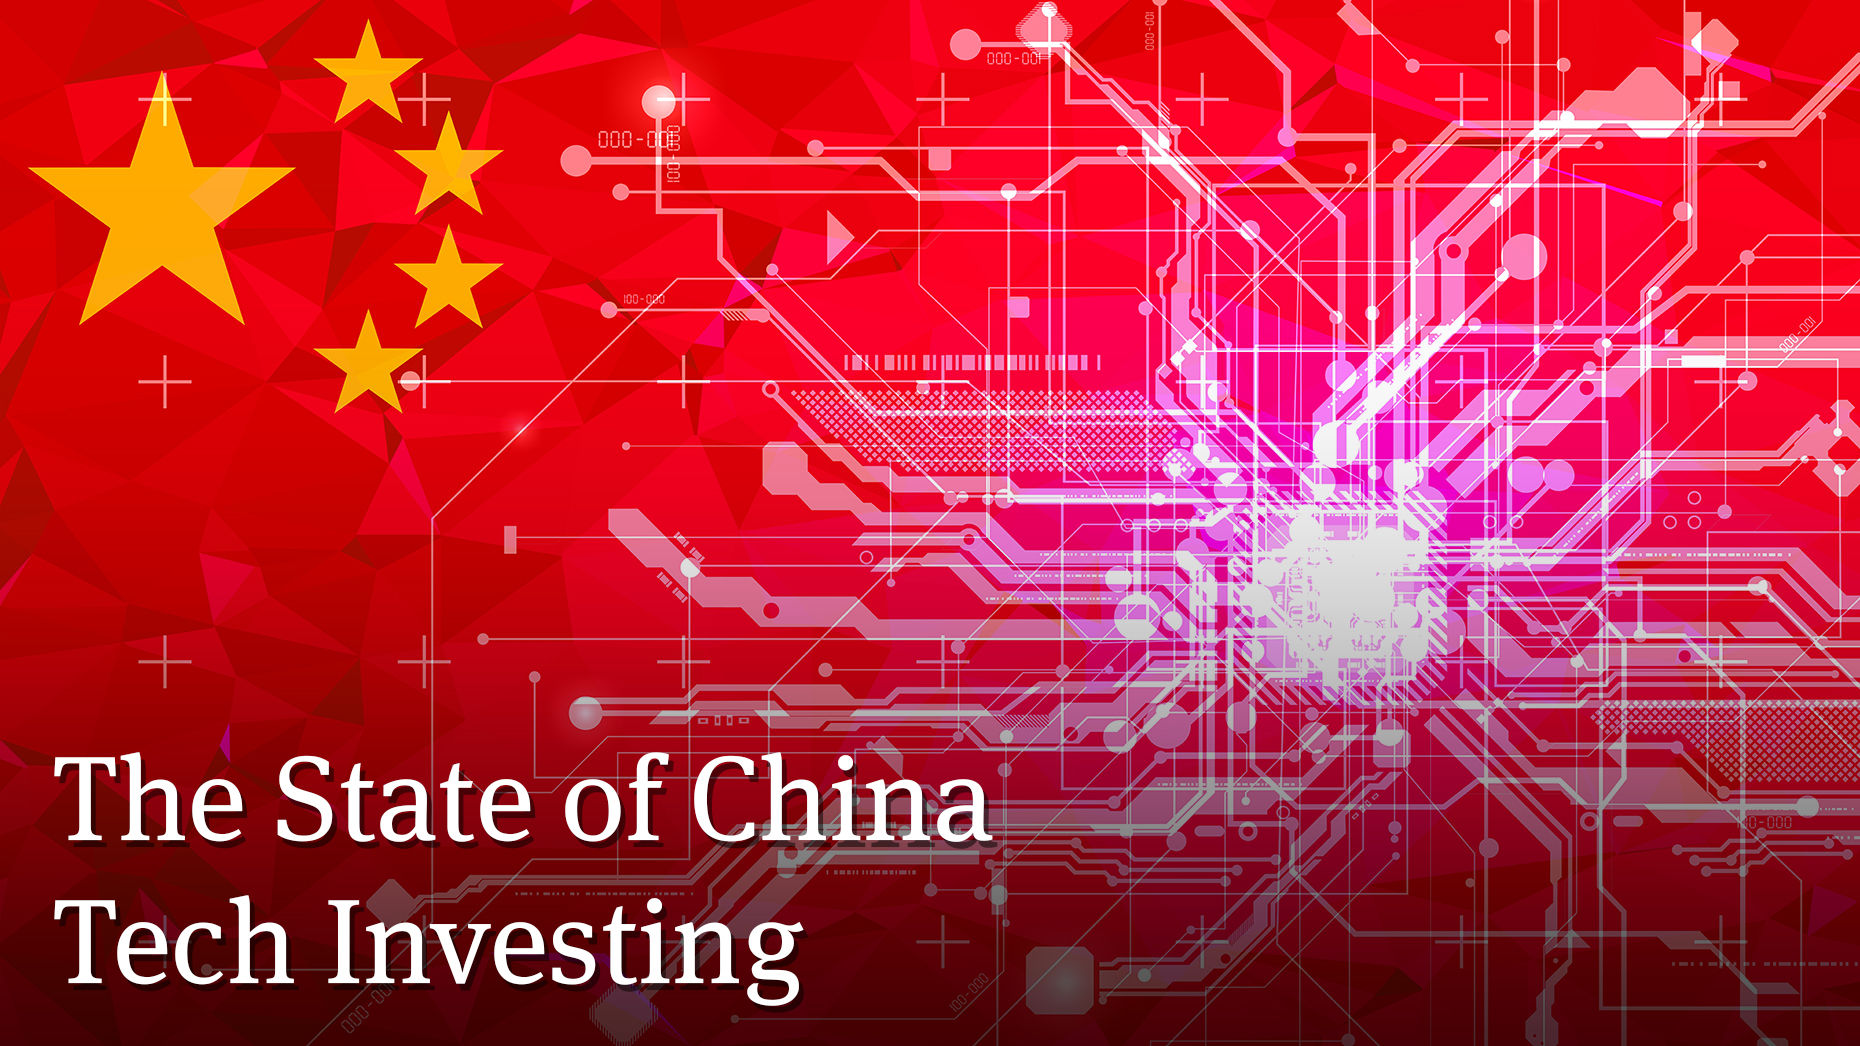 The State of China Tech Investing